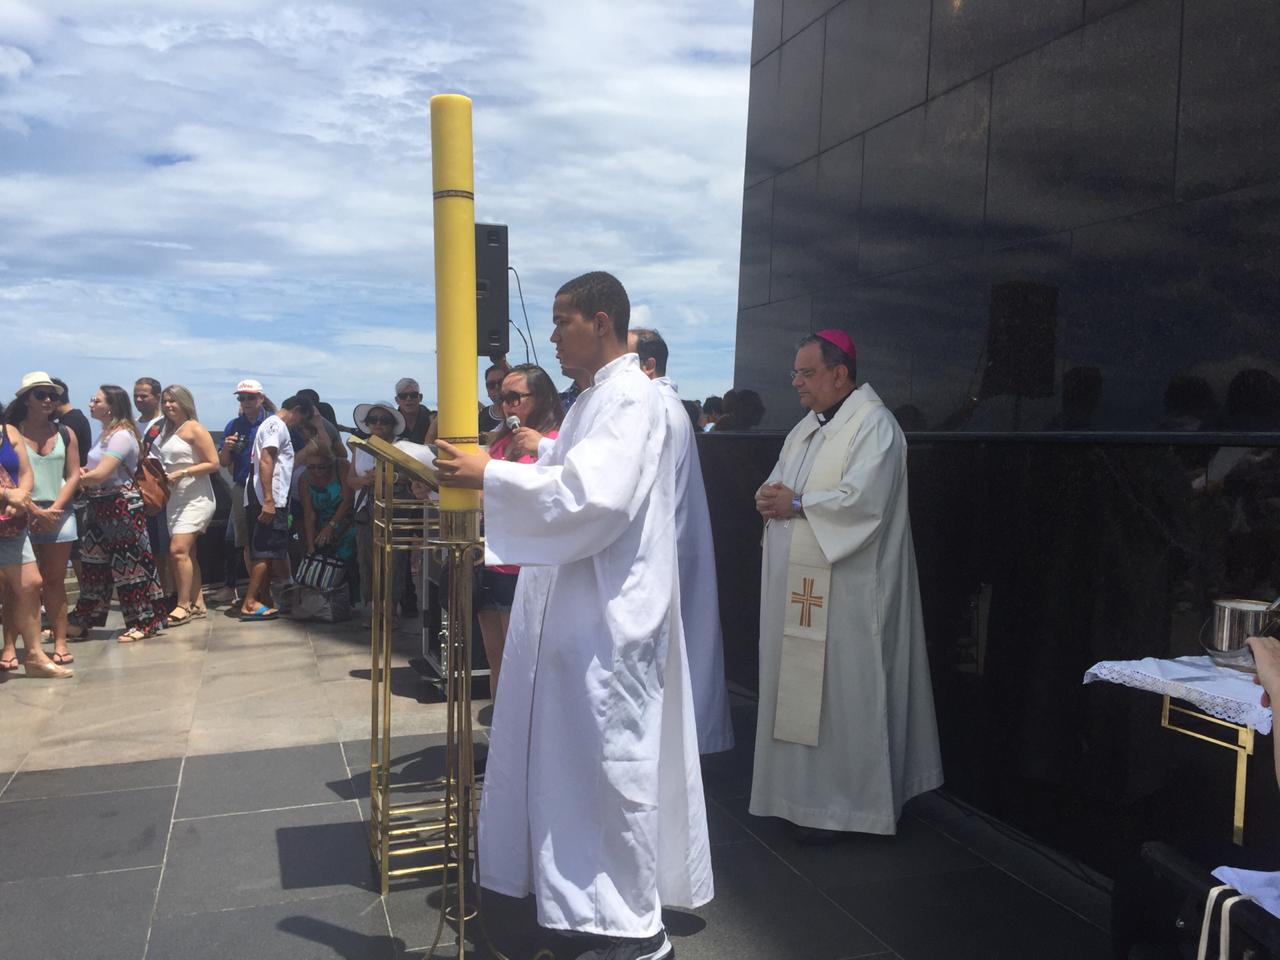 Mass being officiated in Portuguese by priests at Christo Redentor in Brazil.